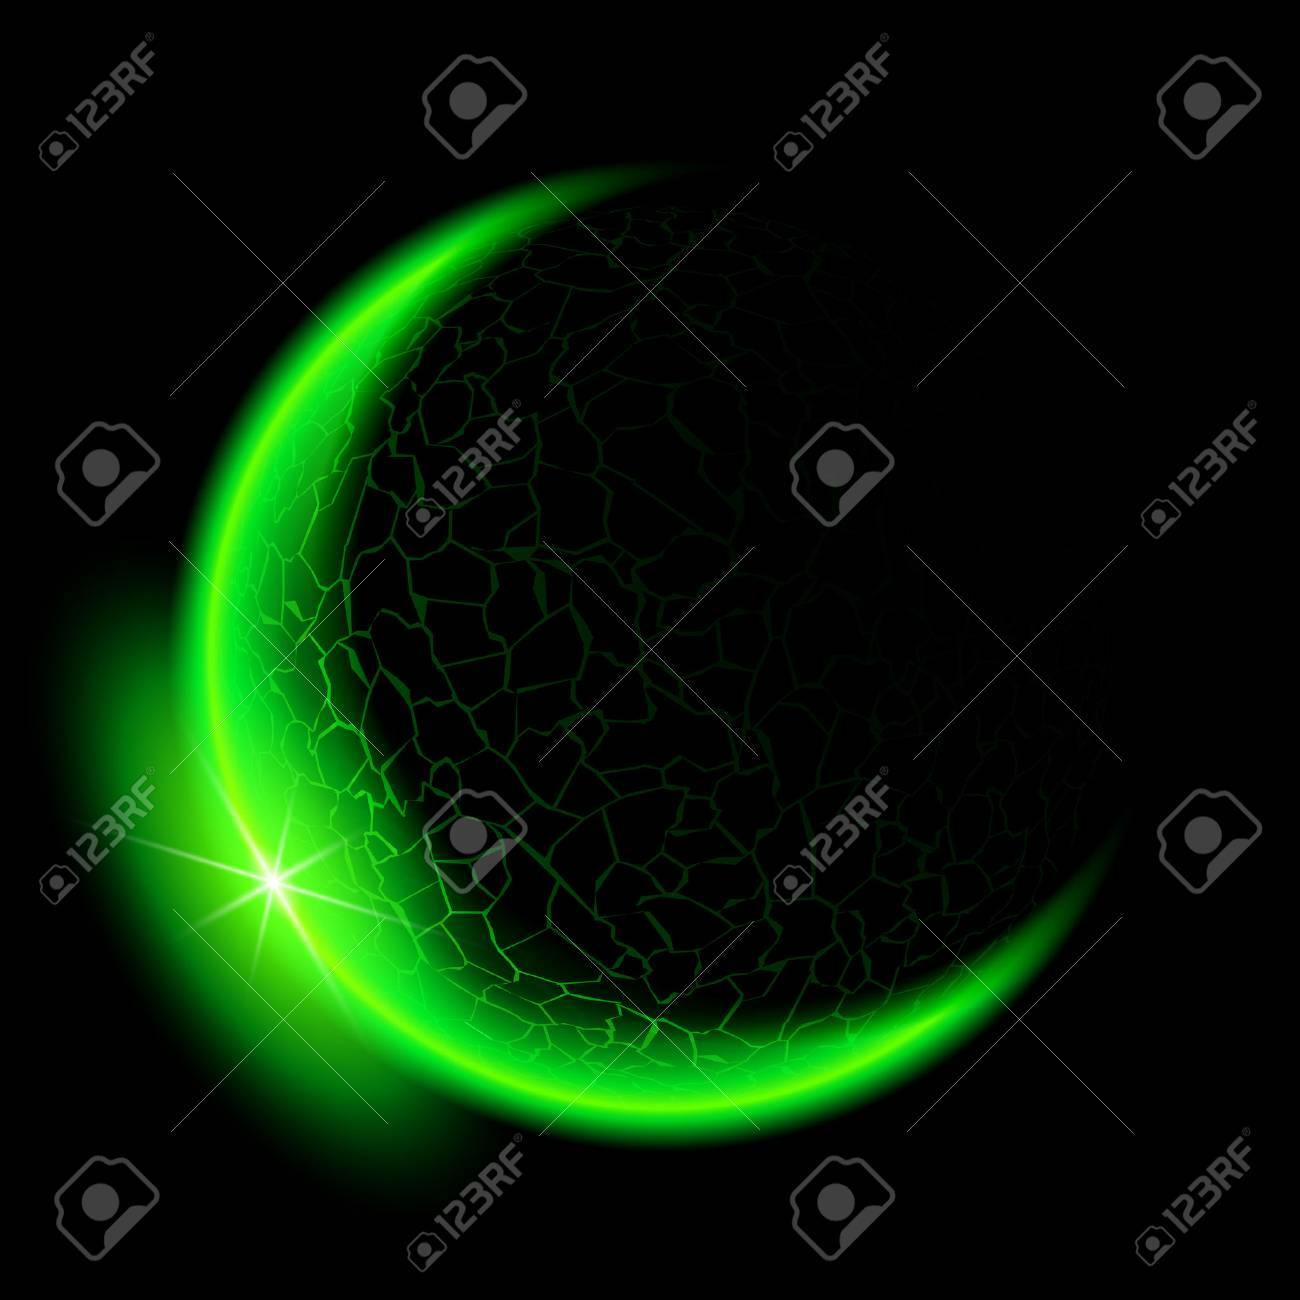 Green crescent with flare on black background. Stock Vector - 23104308